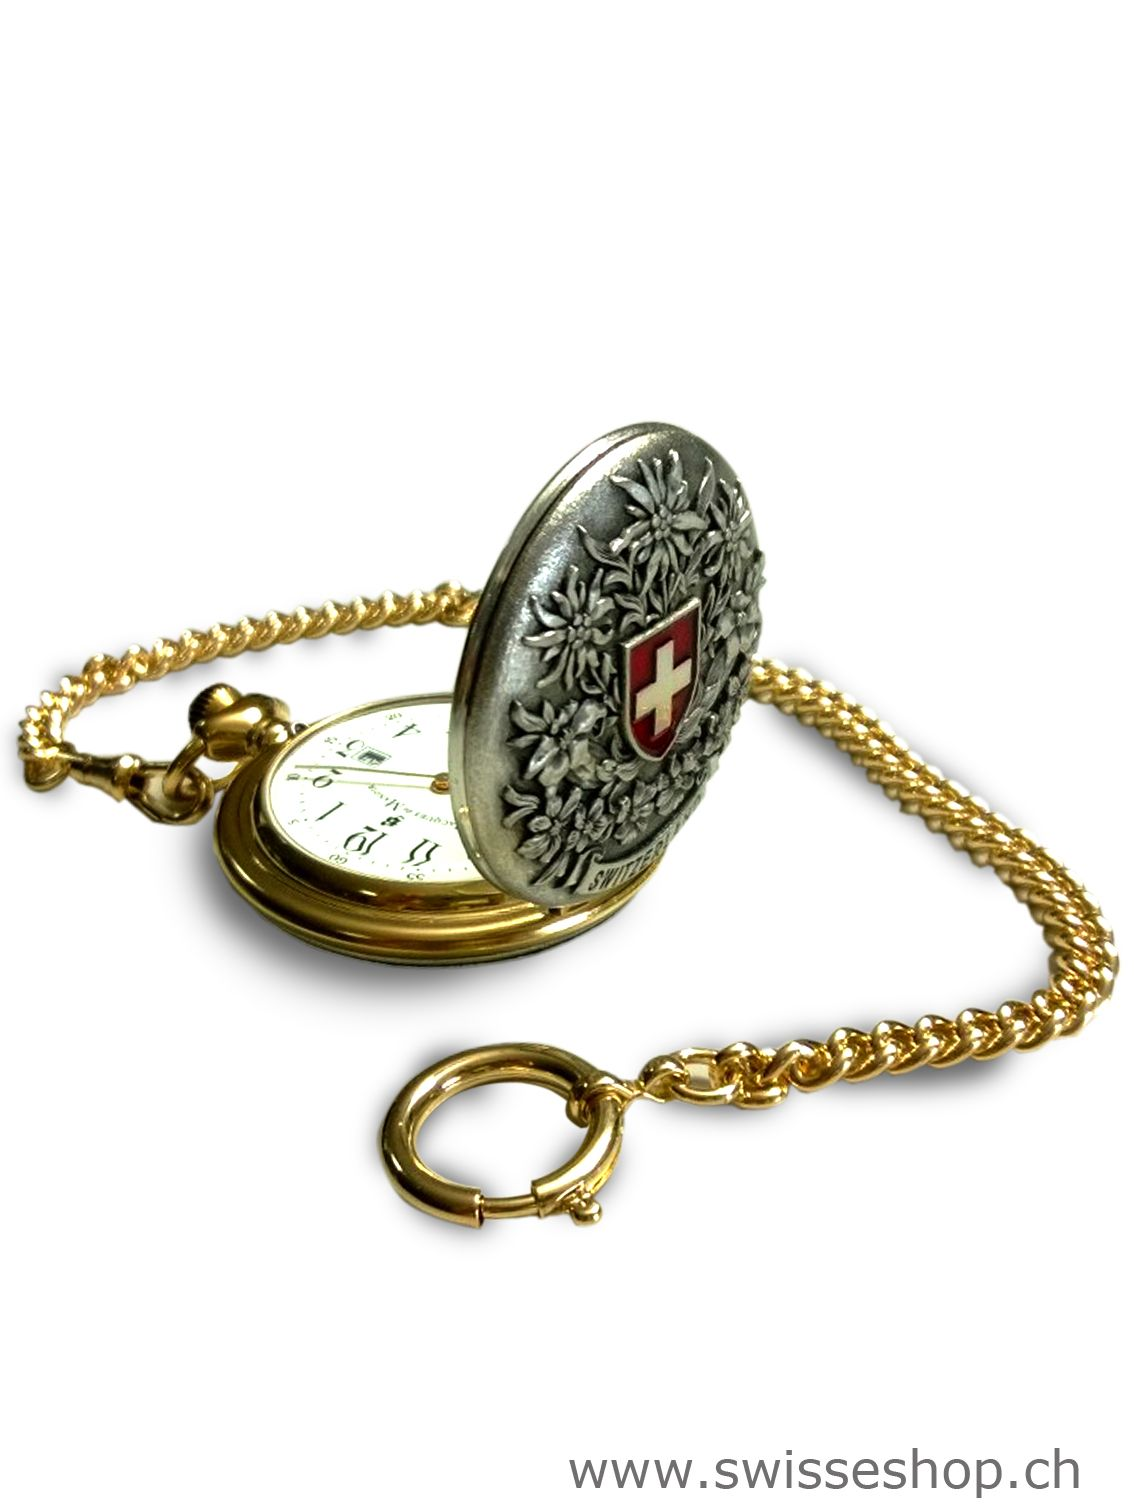 This clock is a Swiss product with a golden chain.